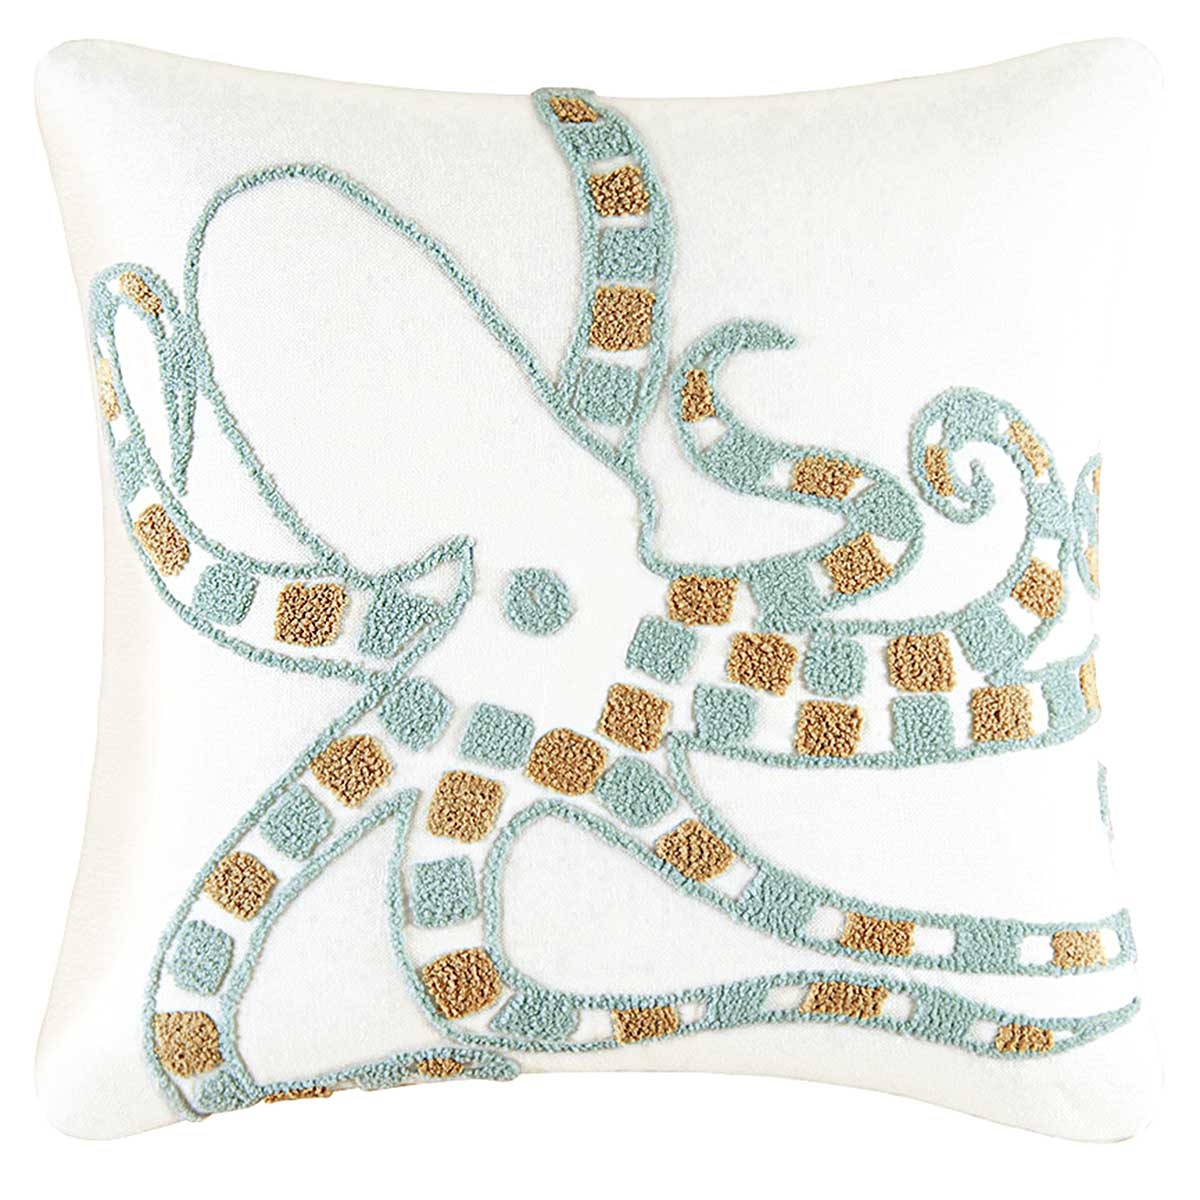 C&F Home_Carol's Attic_Decorative Pillows_Coastal.jpg